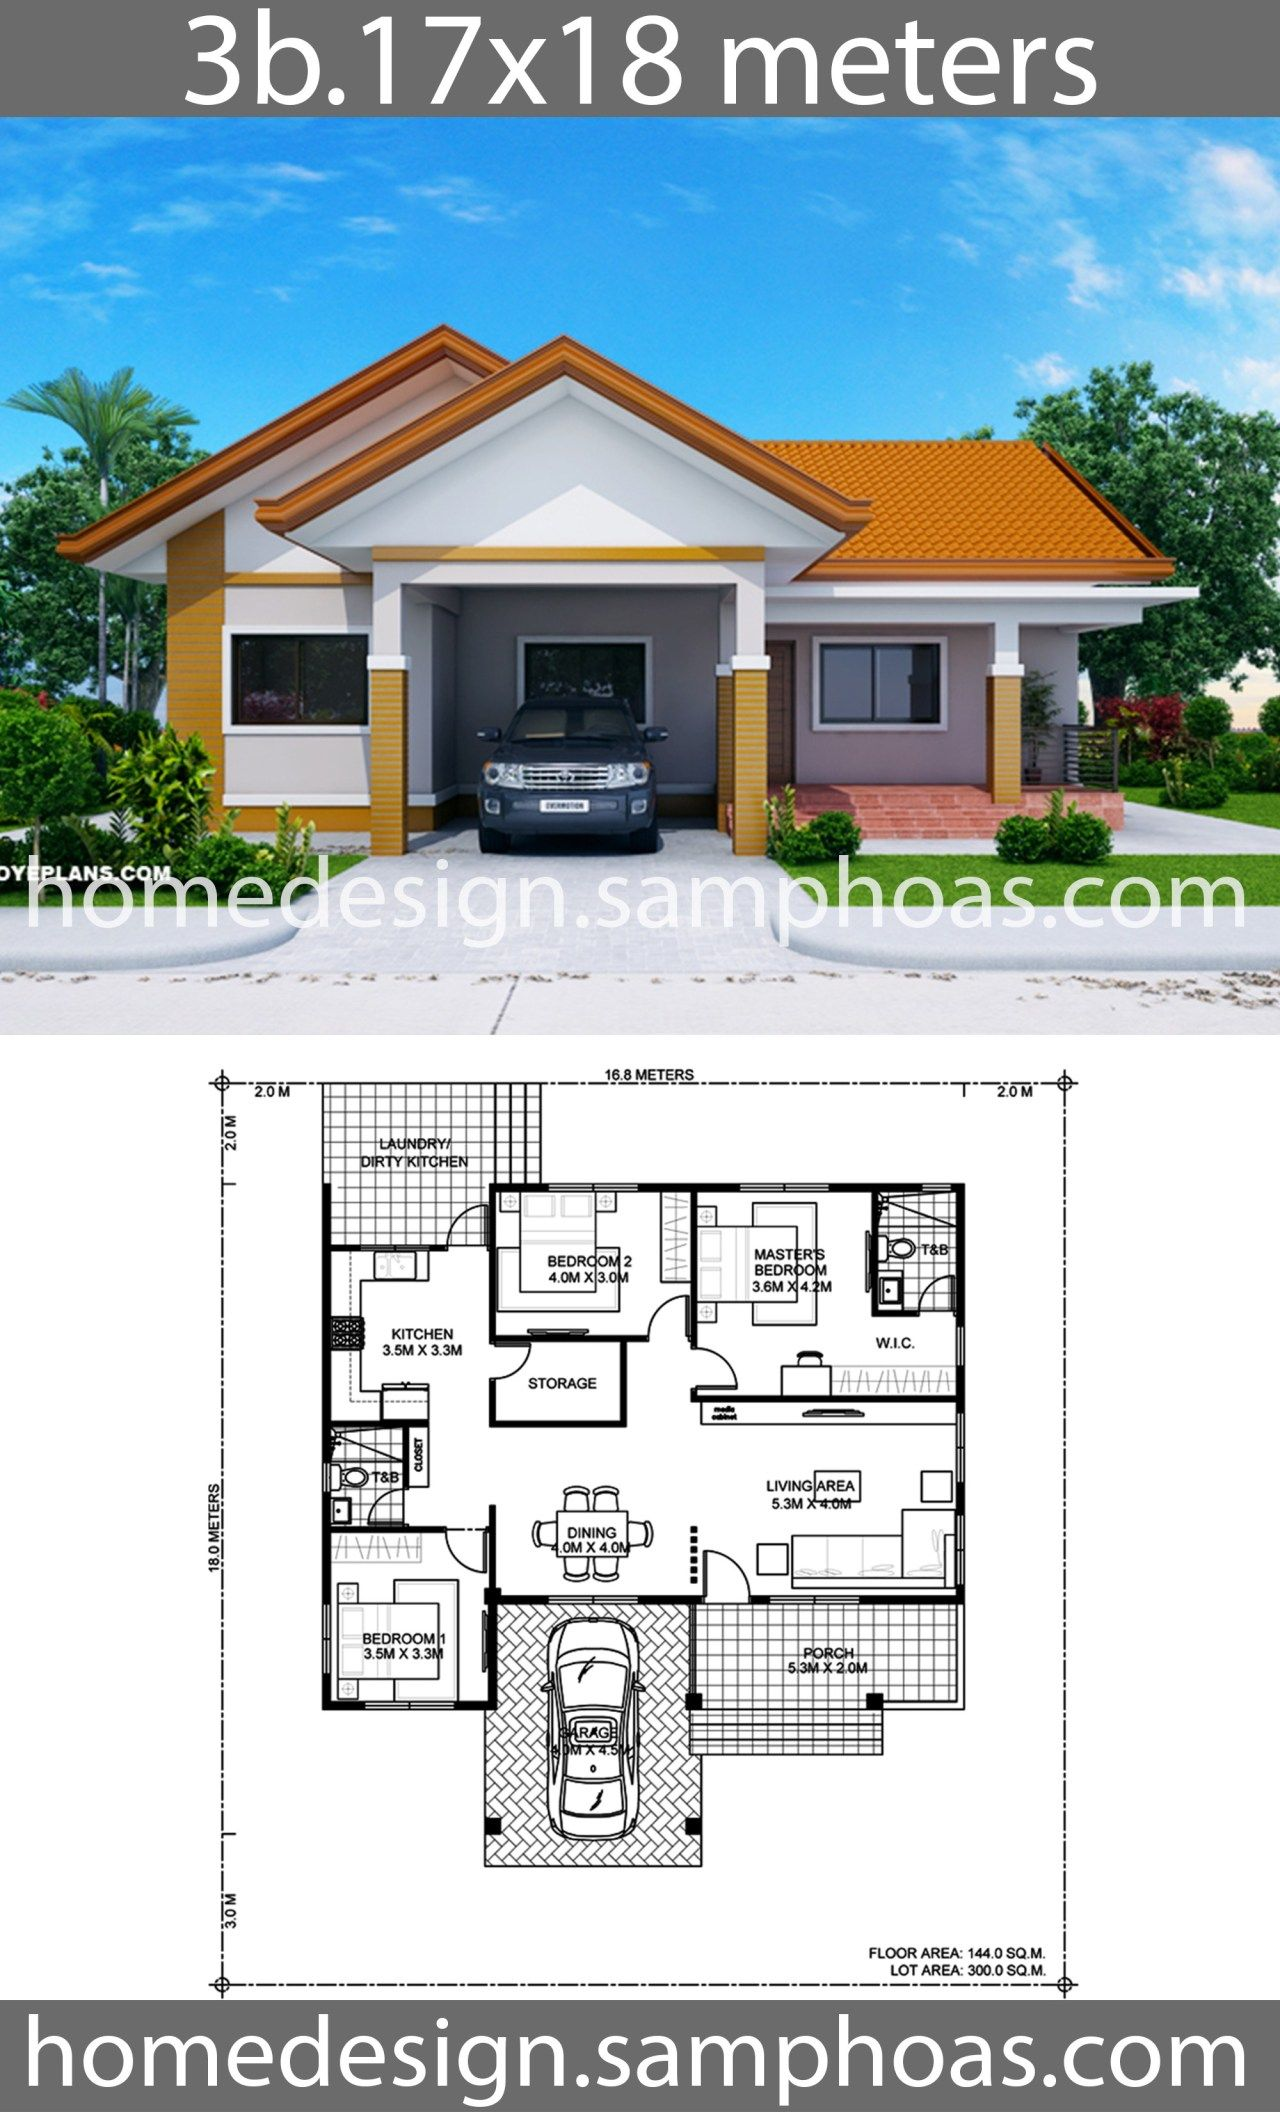 House Design Plans 17x18m With 3 Bedrooms Home Ideas Bungalow House Floor Plans Affordable House Plans House Construction Plan